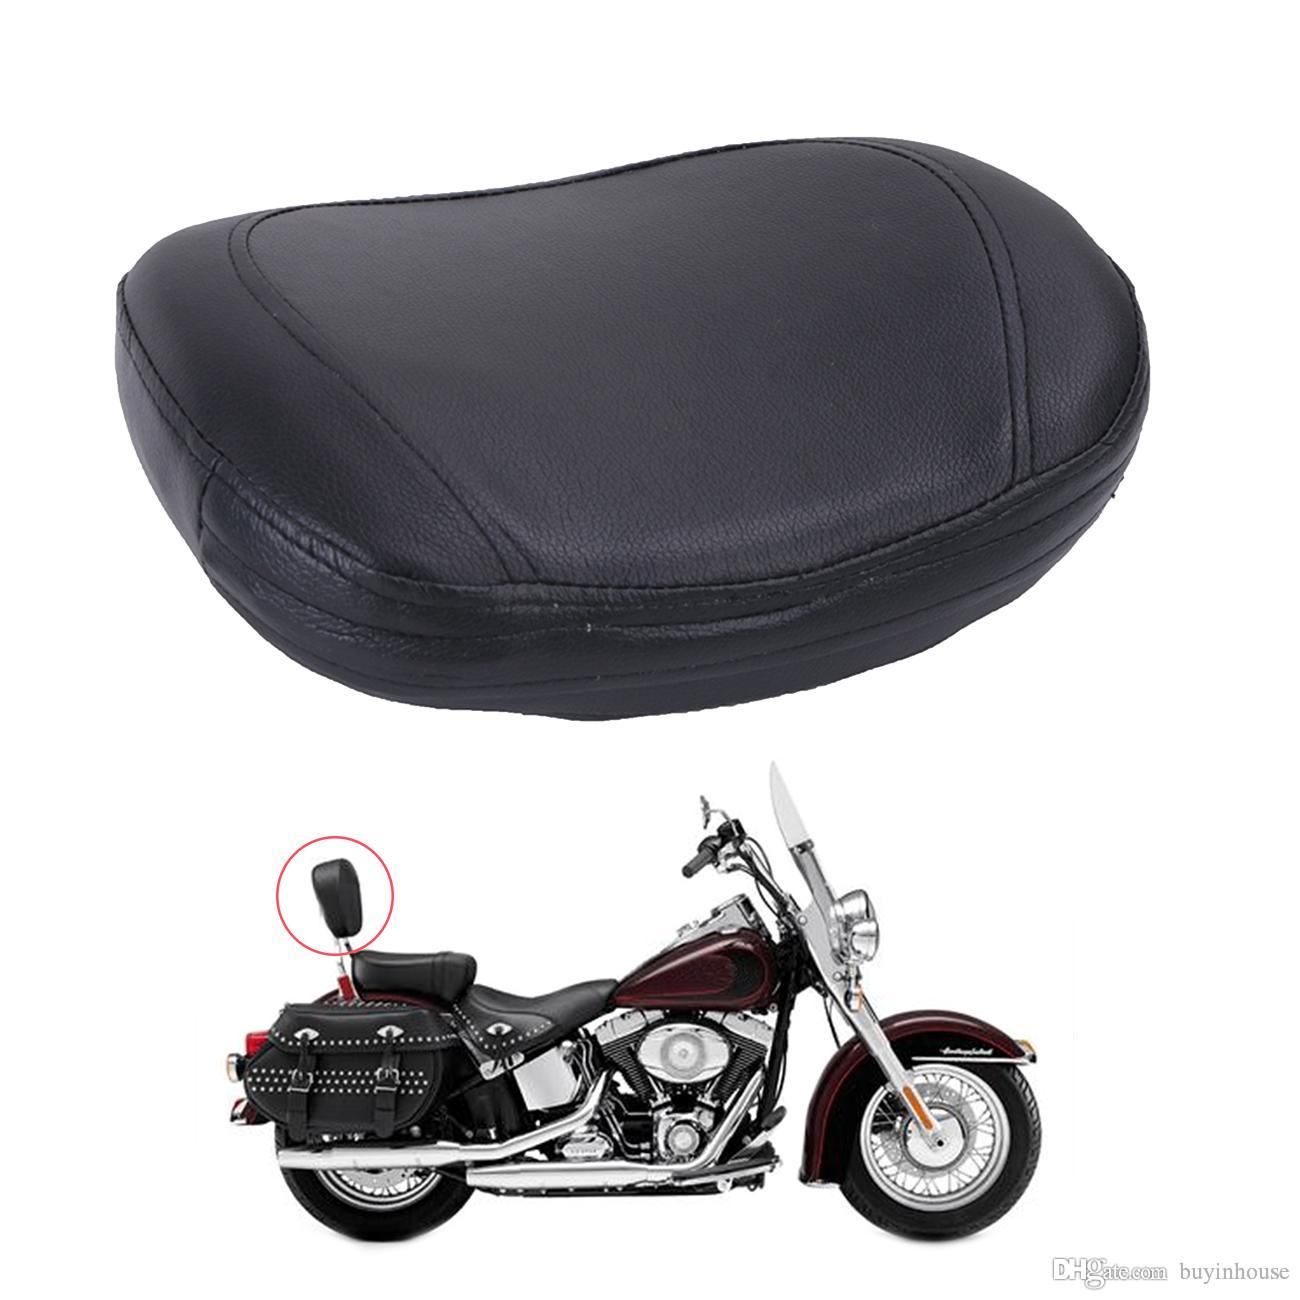 Padded Motorcycle Seat Covers Velcromag